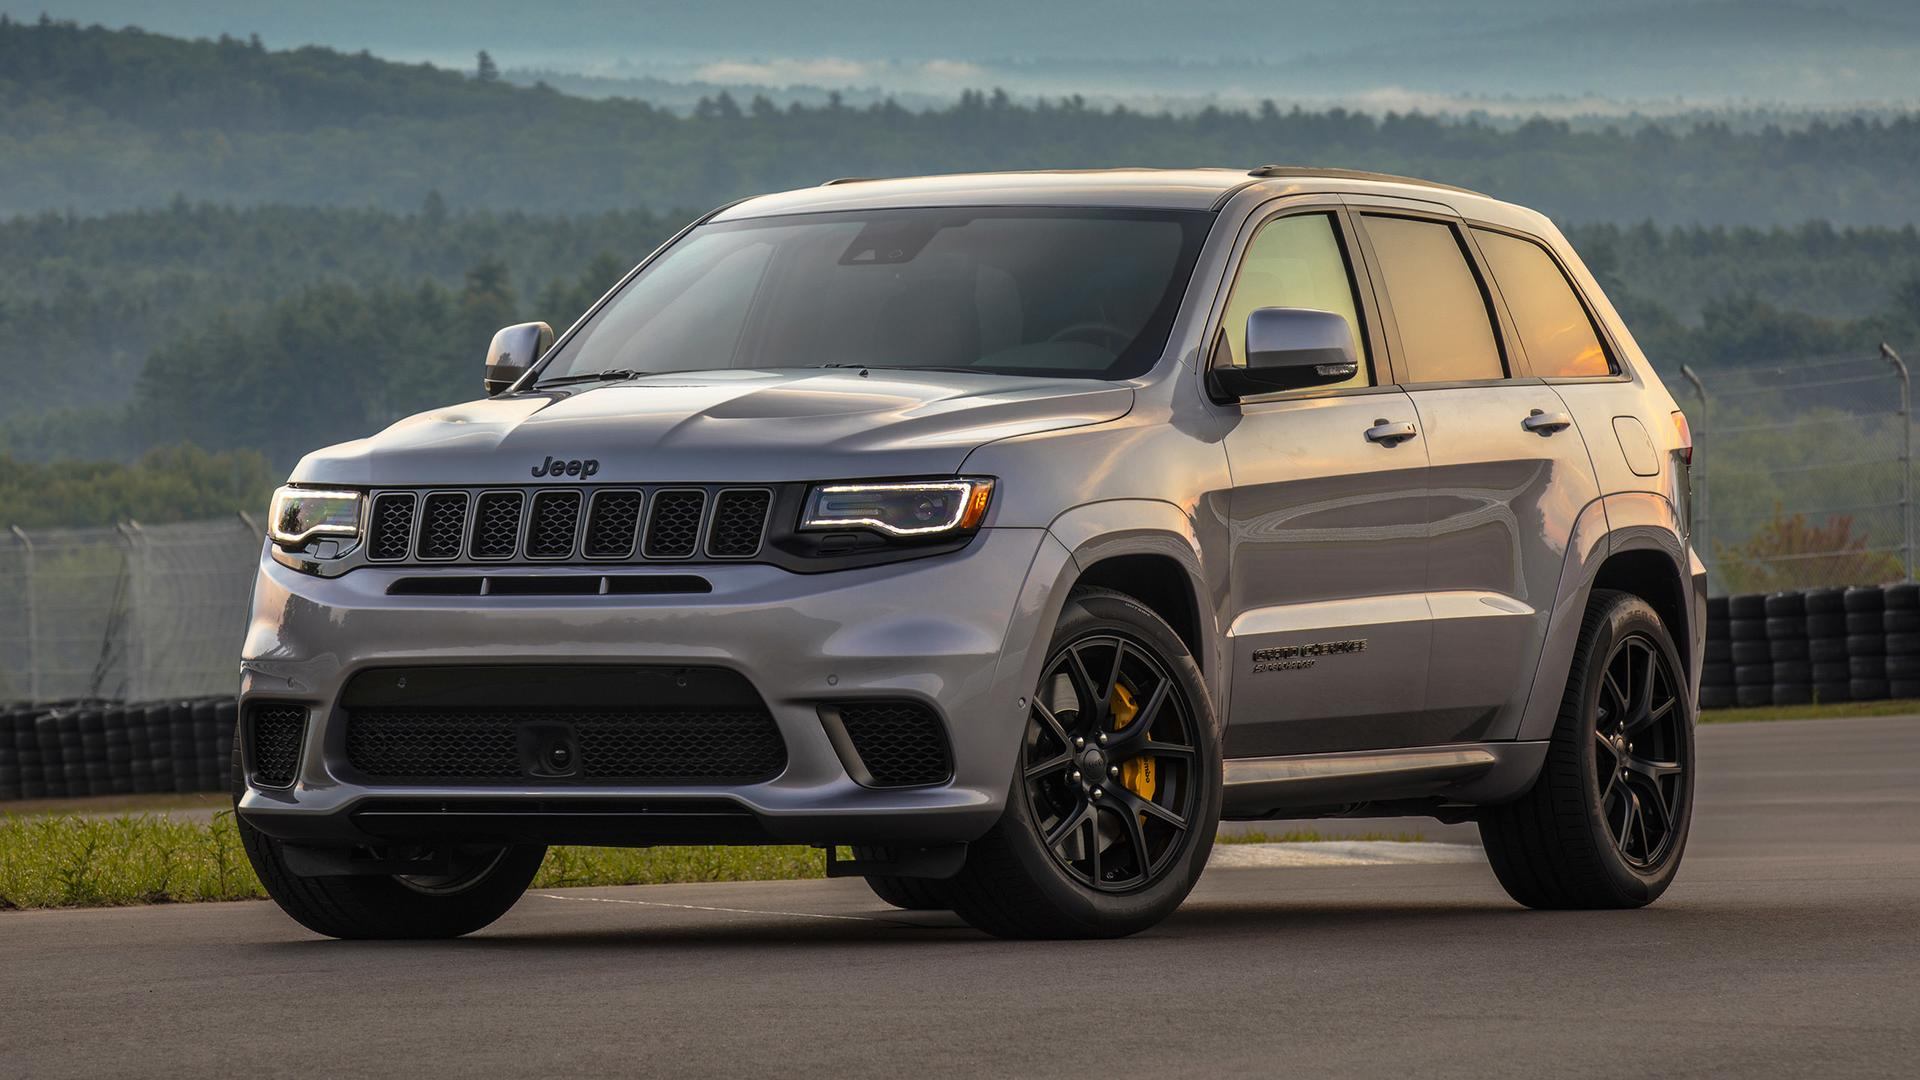 2018 Jeep Grand Cherokee Trackhawk Hellcat >> 2018 Jeep Grand Cherokee Trackhawk First Drive Hellcat All The Things